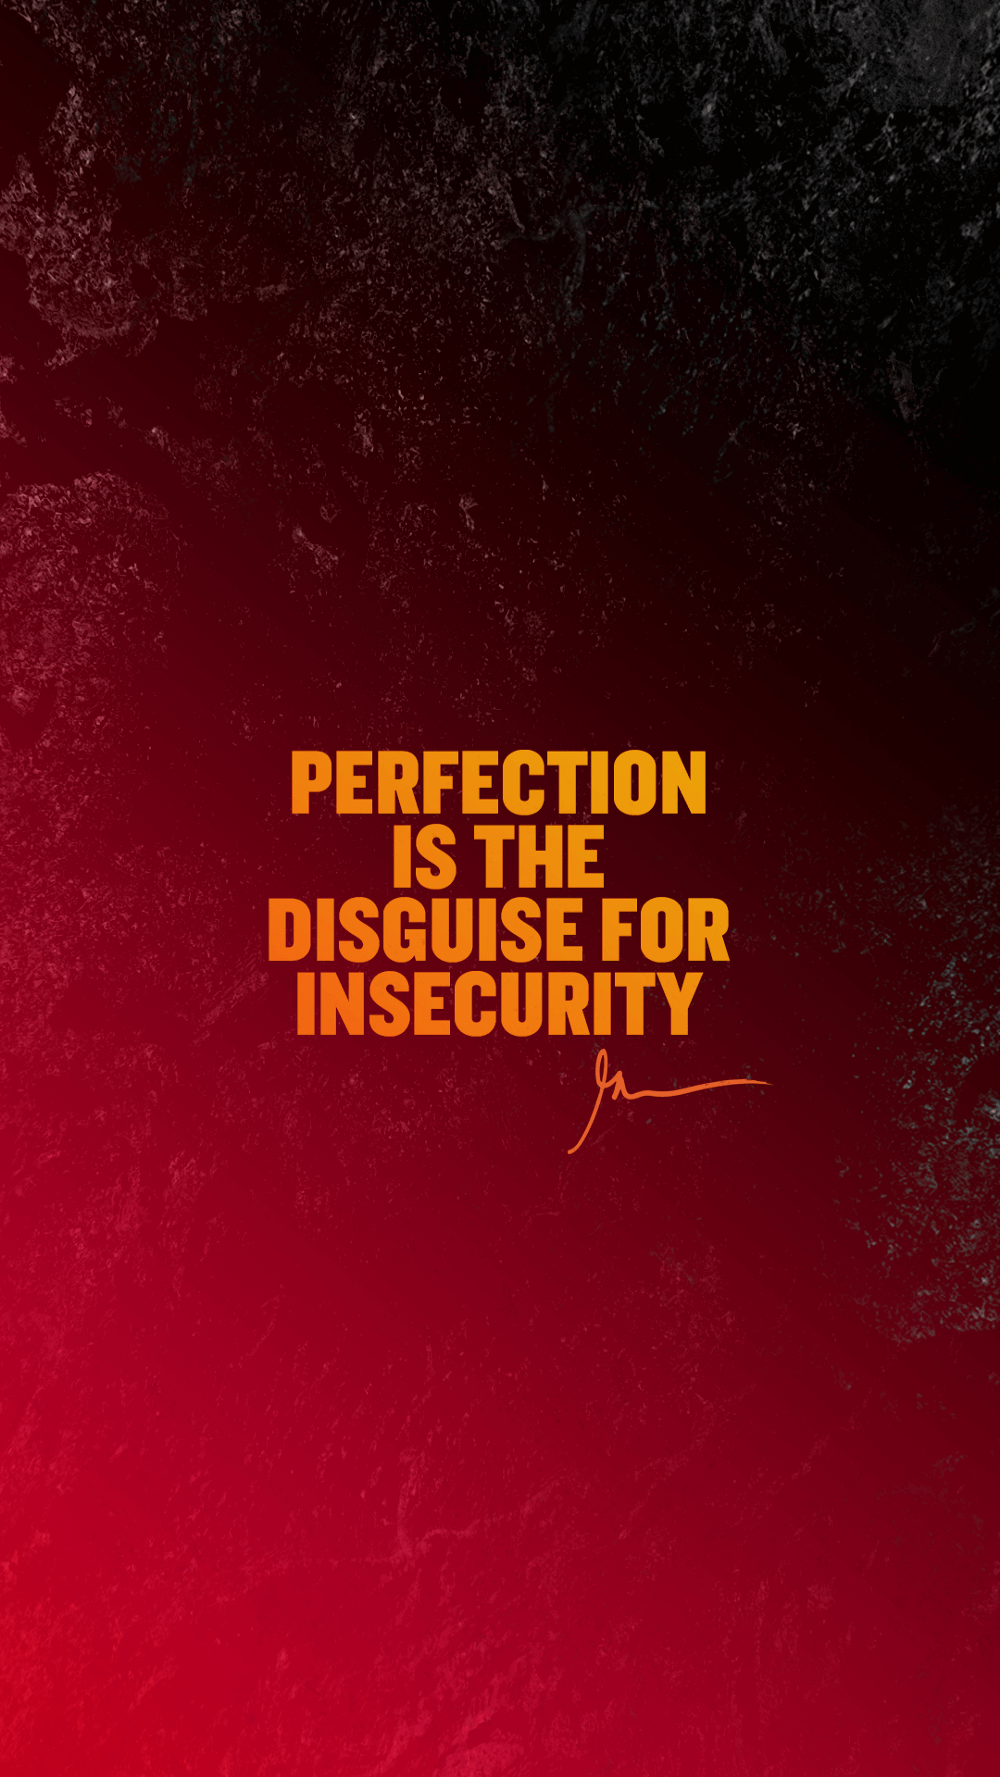 Perfection Is The Disguise For Insecurity